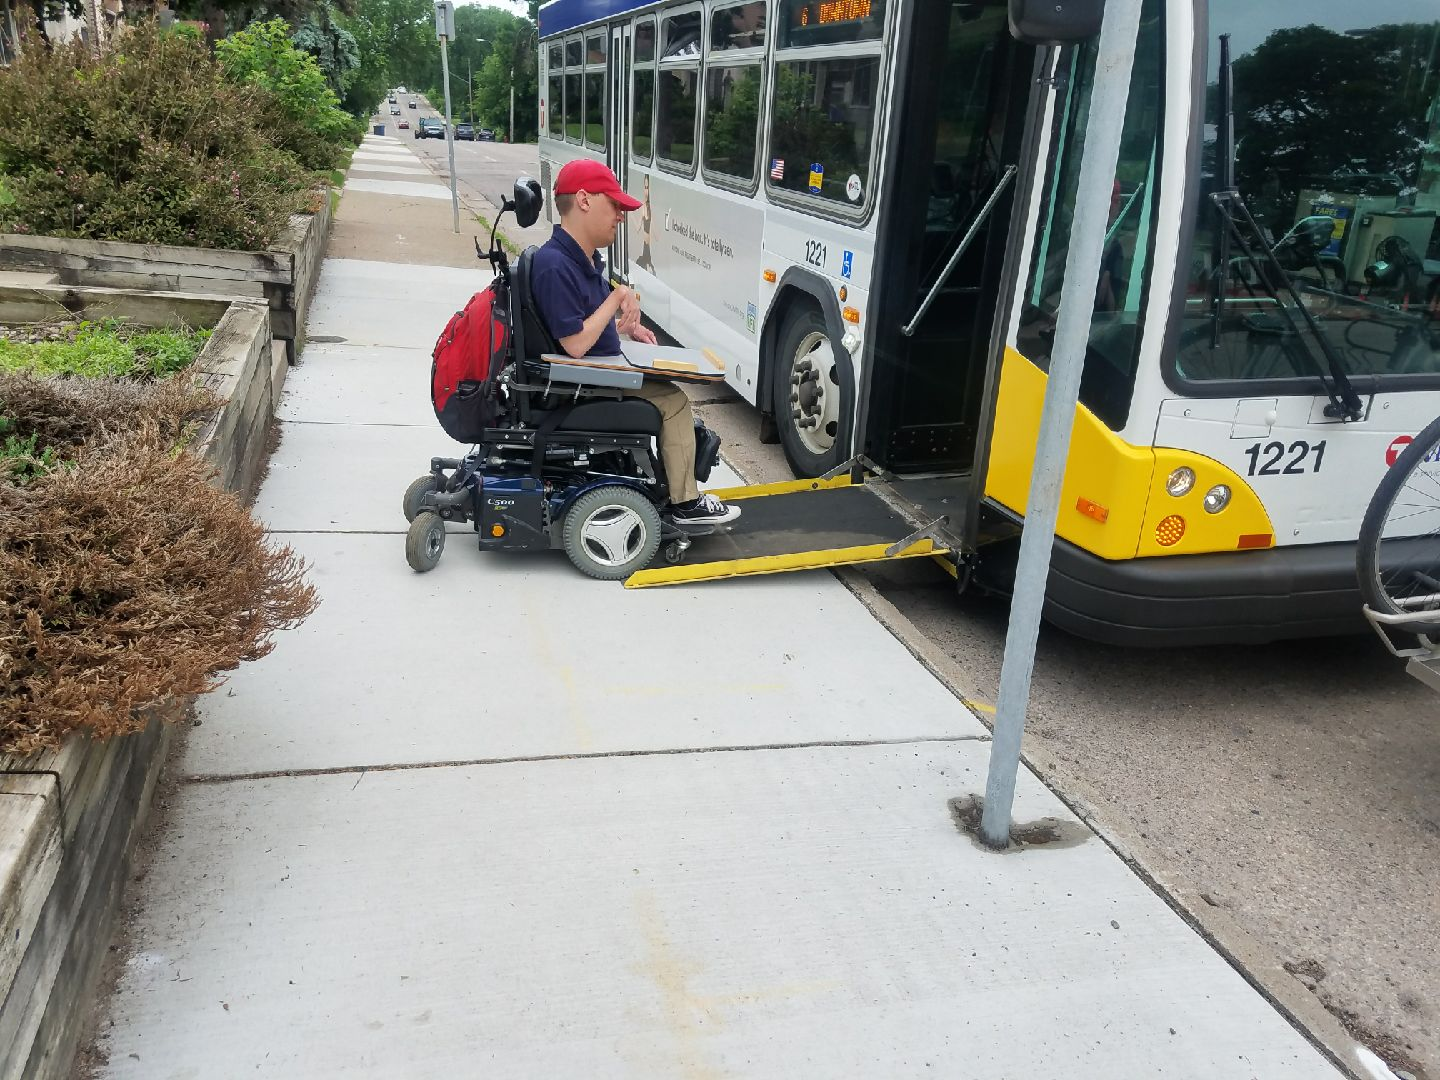 Sam Graves driving wheelchair on to city bus wheelchair ramp